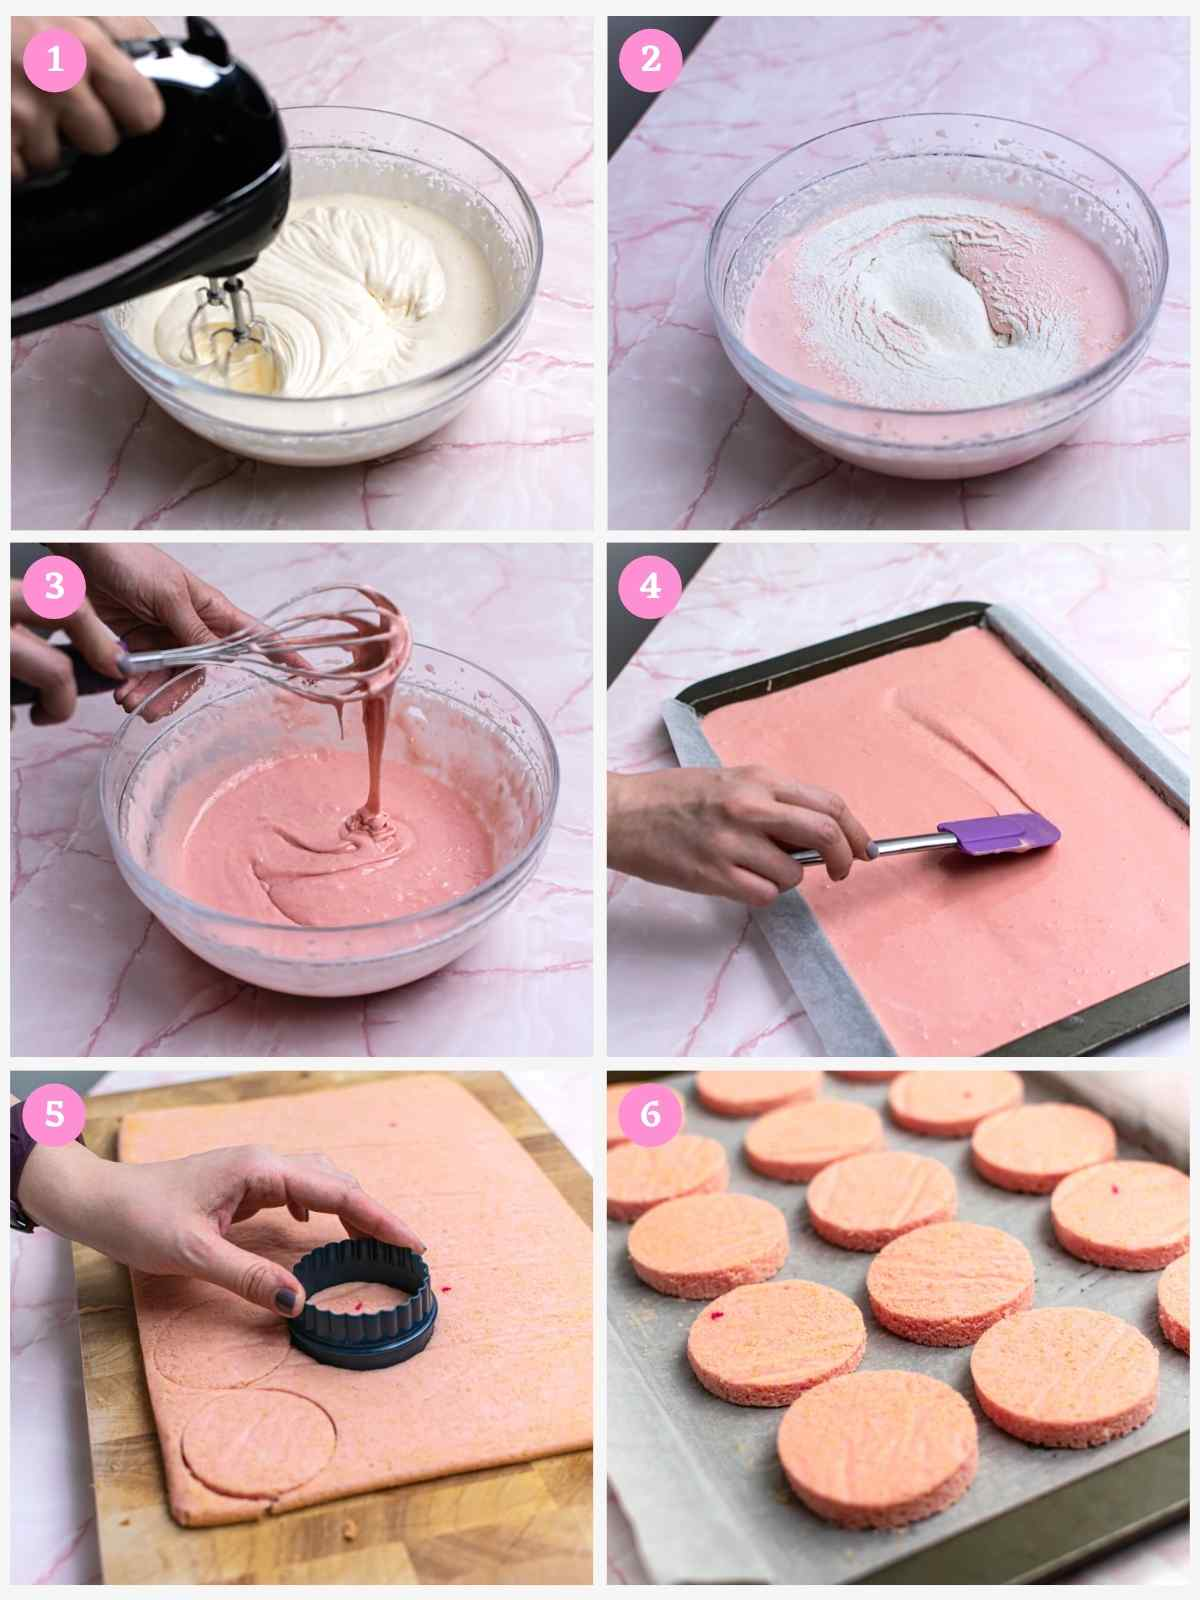 Collage of 6 images showing how to make cake batter for mini blueberry cake